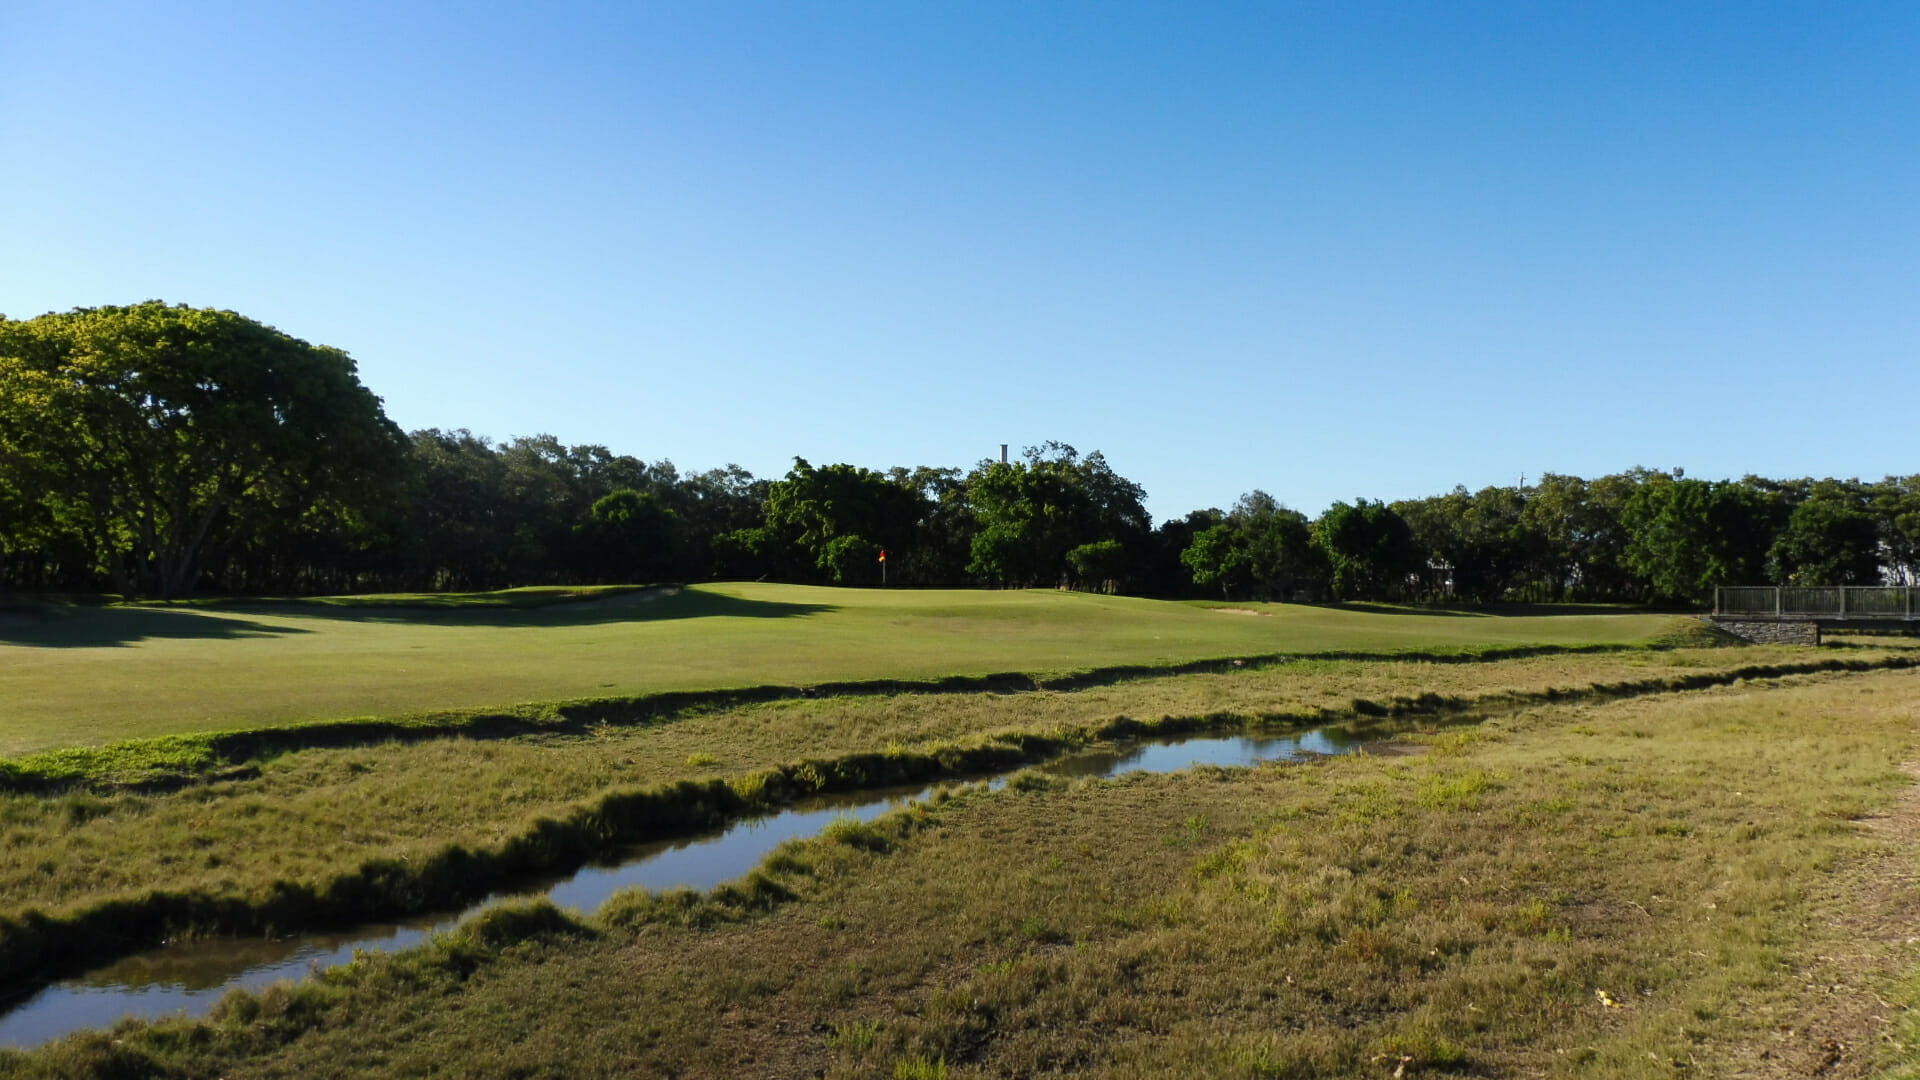 Natural waterway meanders through golf hole at Royal Queensland golf course